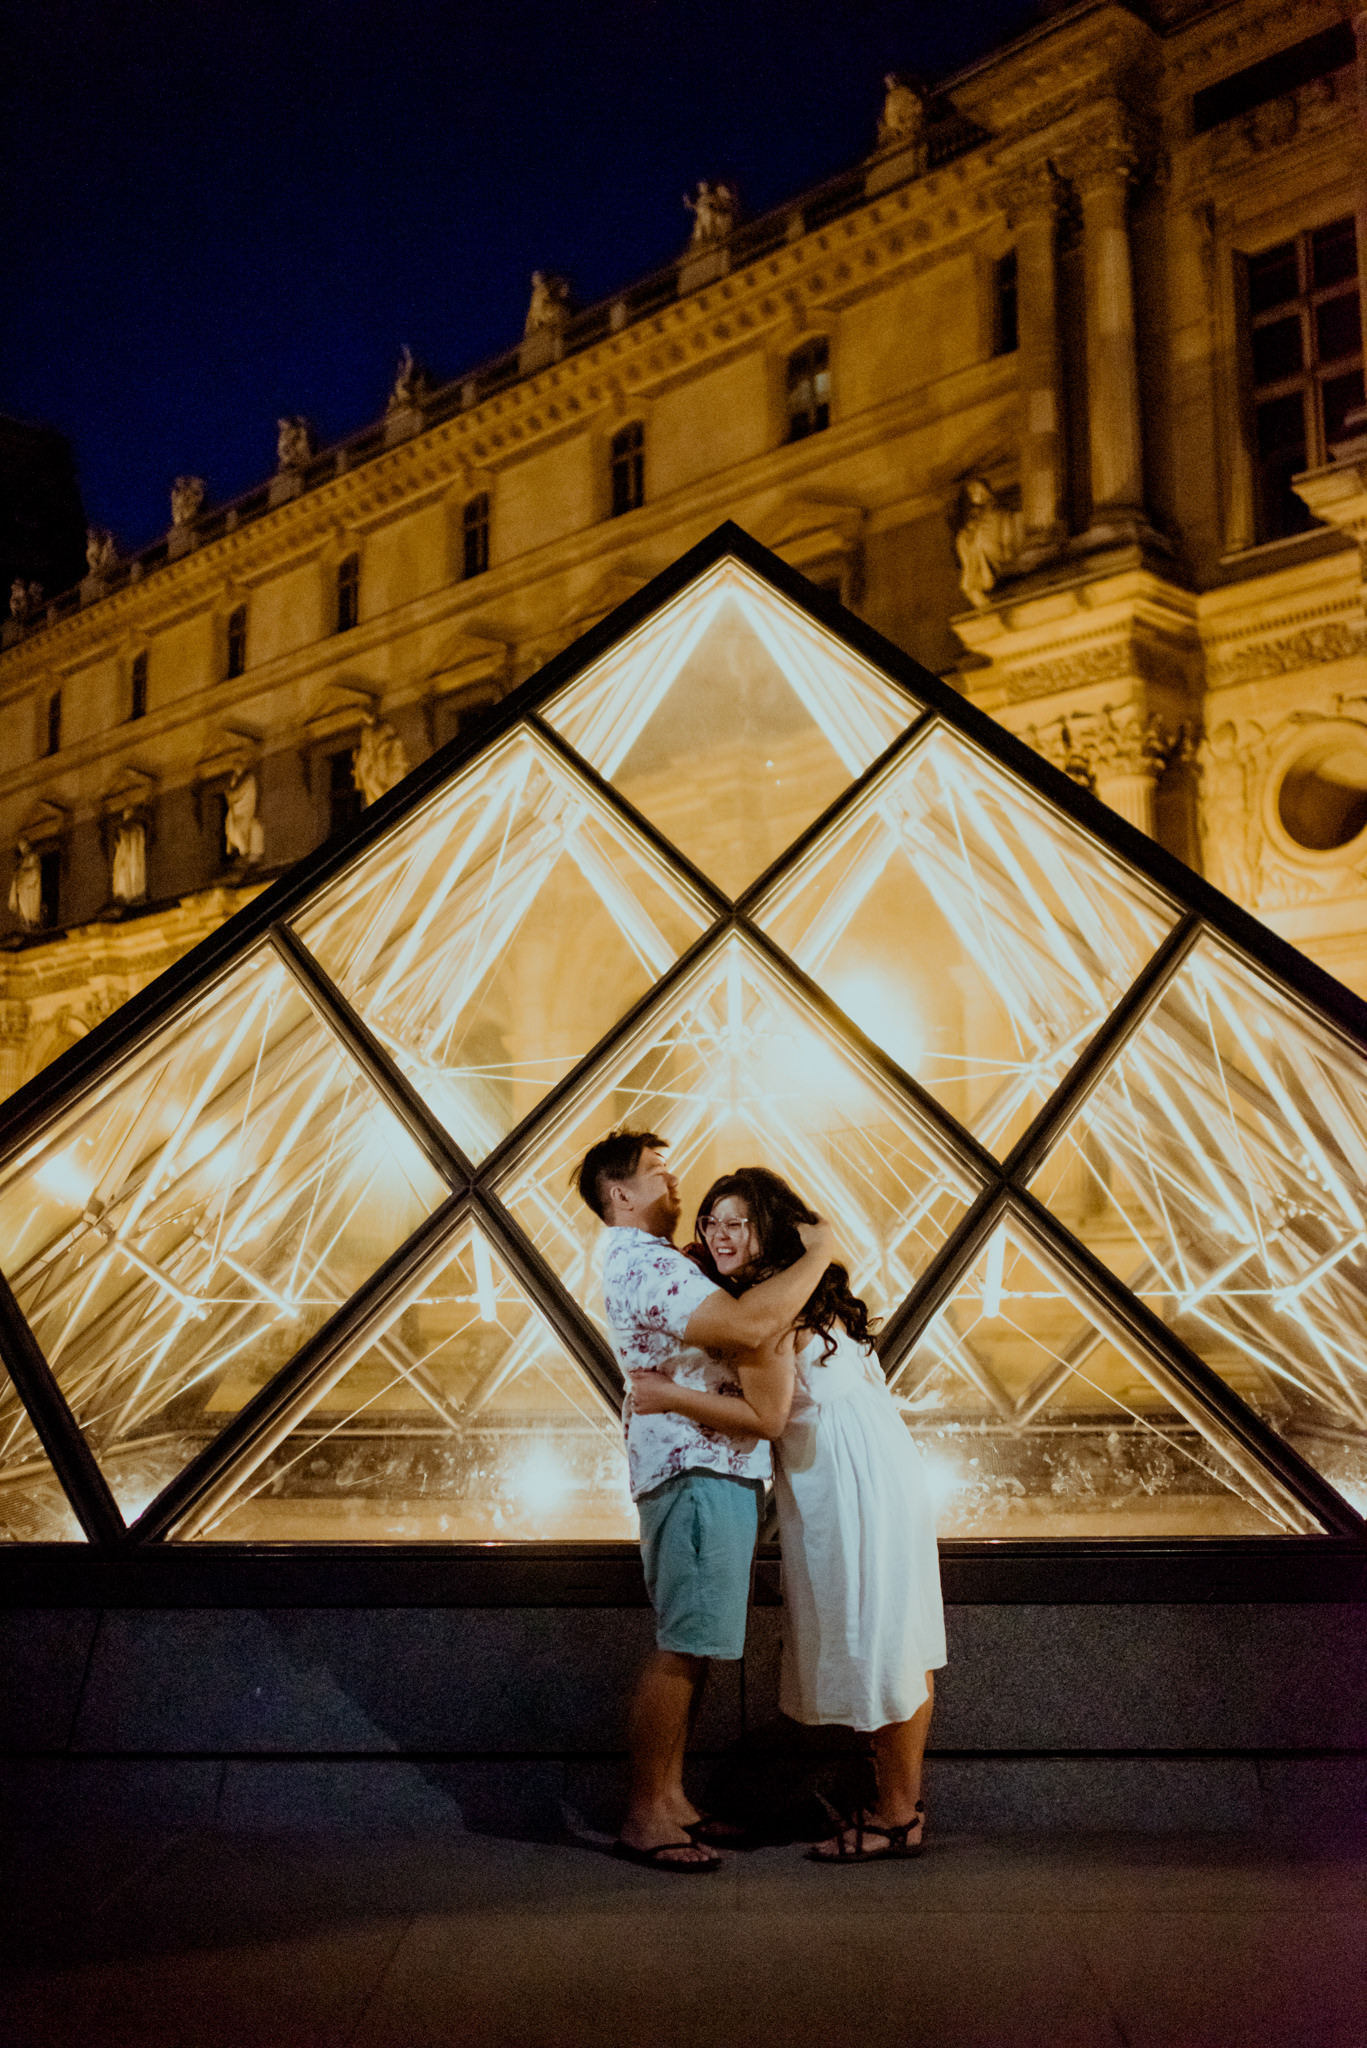 Asian man and woman hug in front of the Louvre Pyramids.